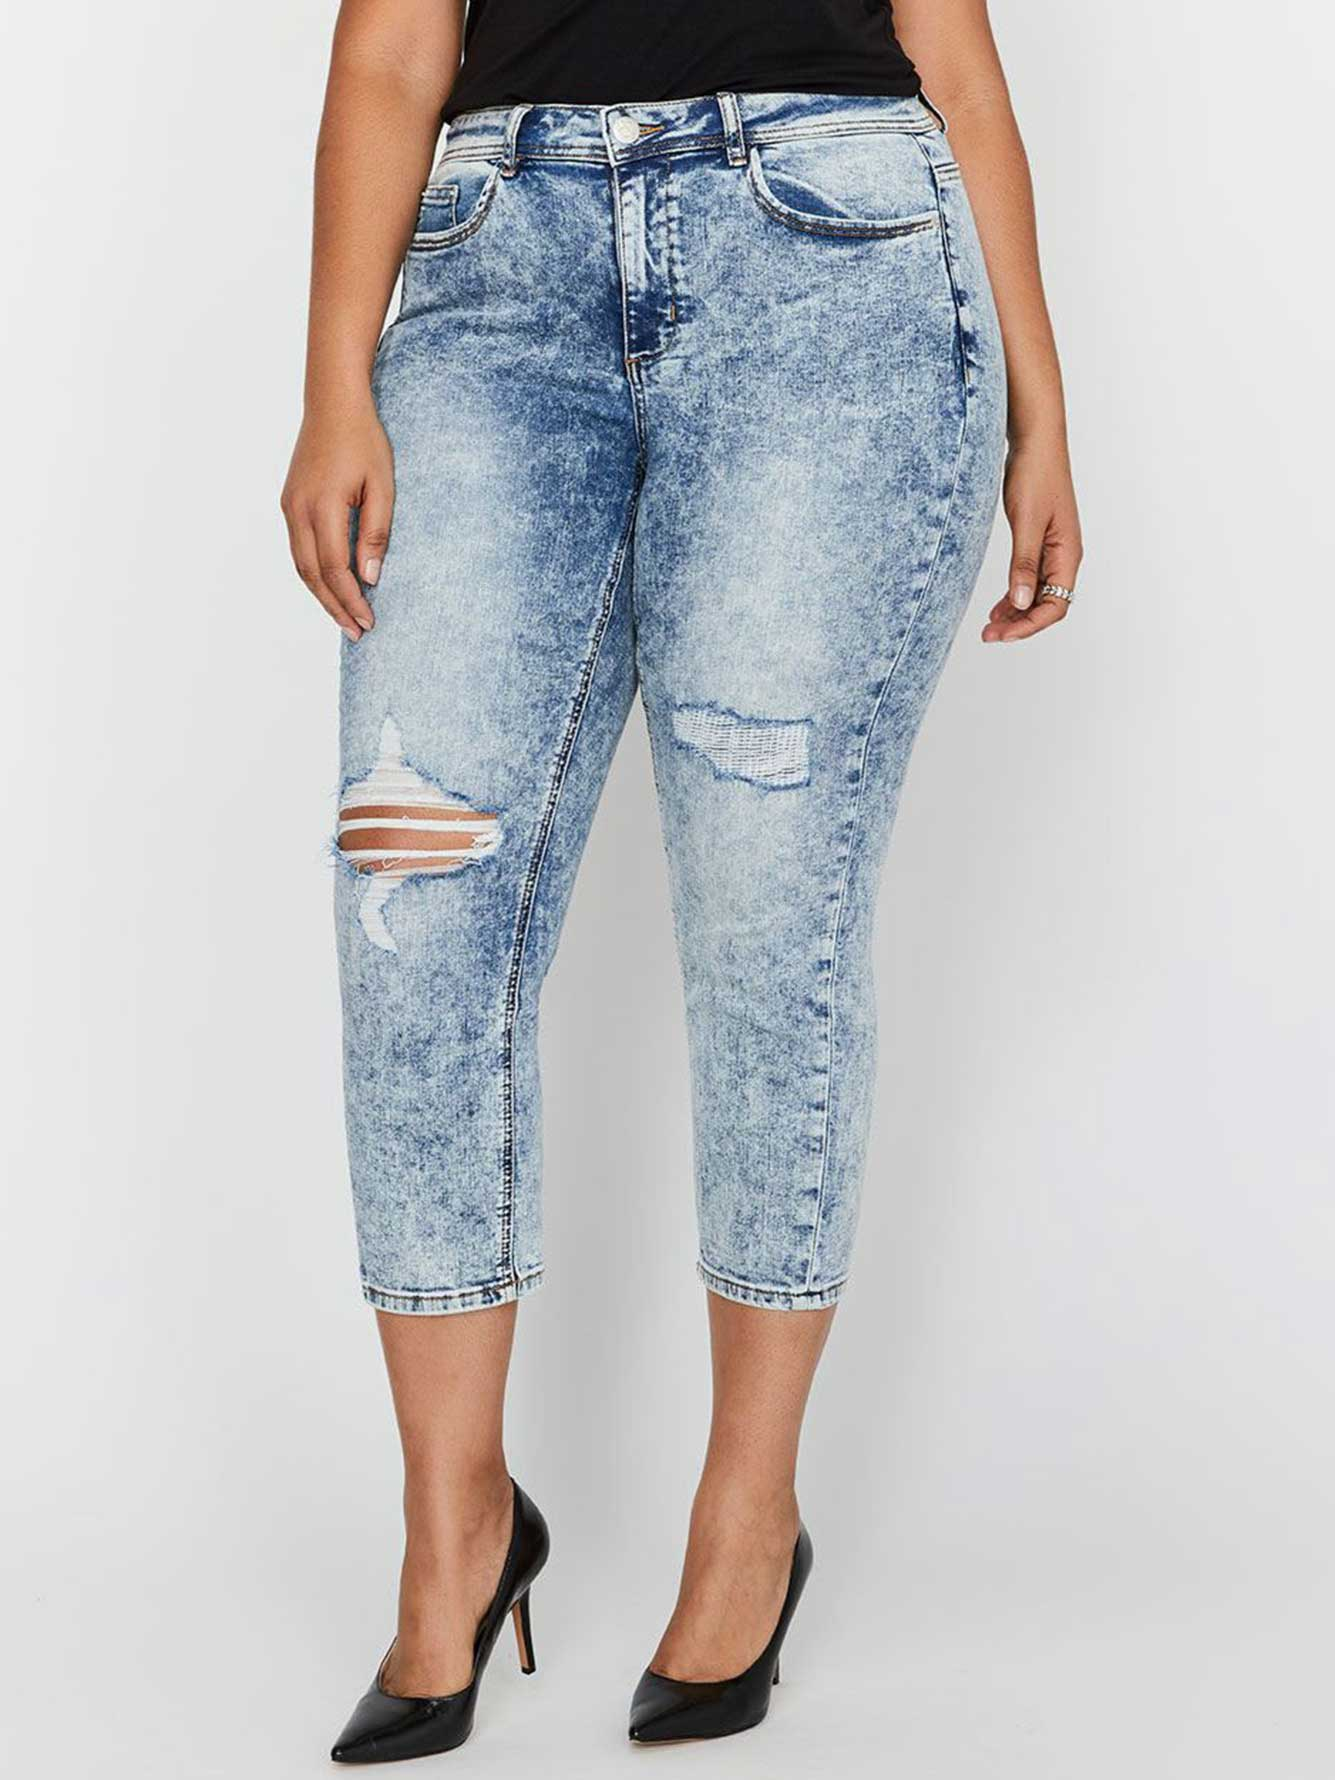 L&L Authentic Cropped Skinny Jeans with Rips & Acid Wash